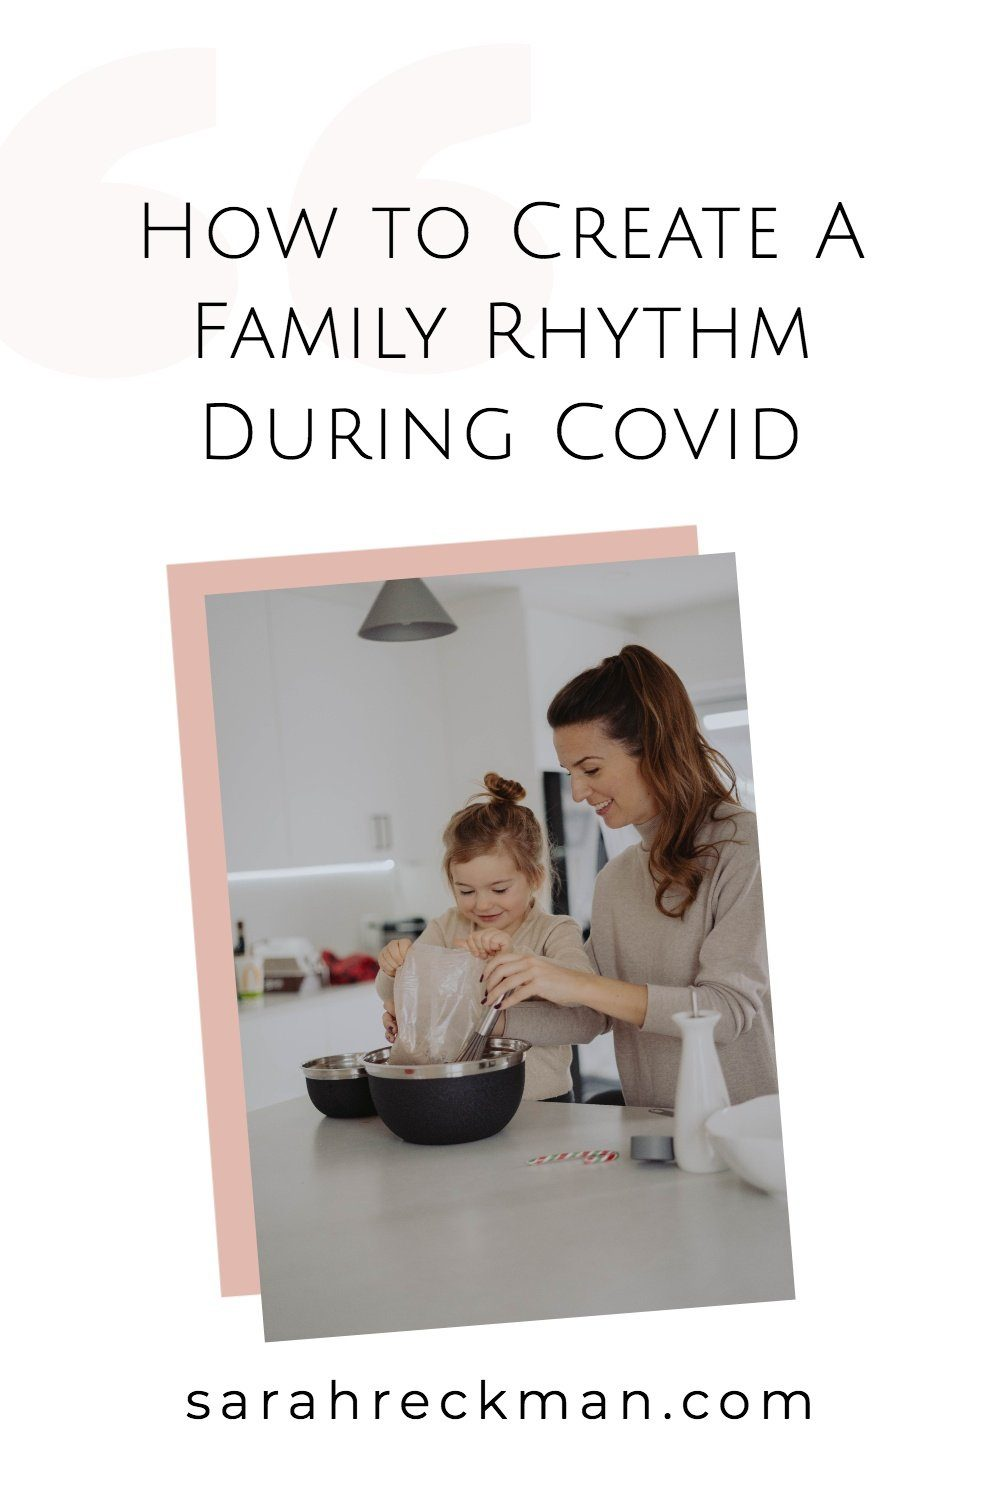 How-to-Create-A-Family-Rhythm-During-Covid 4